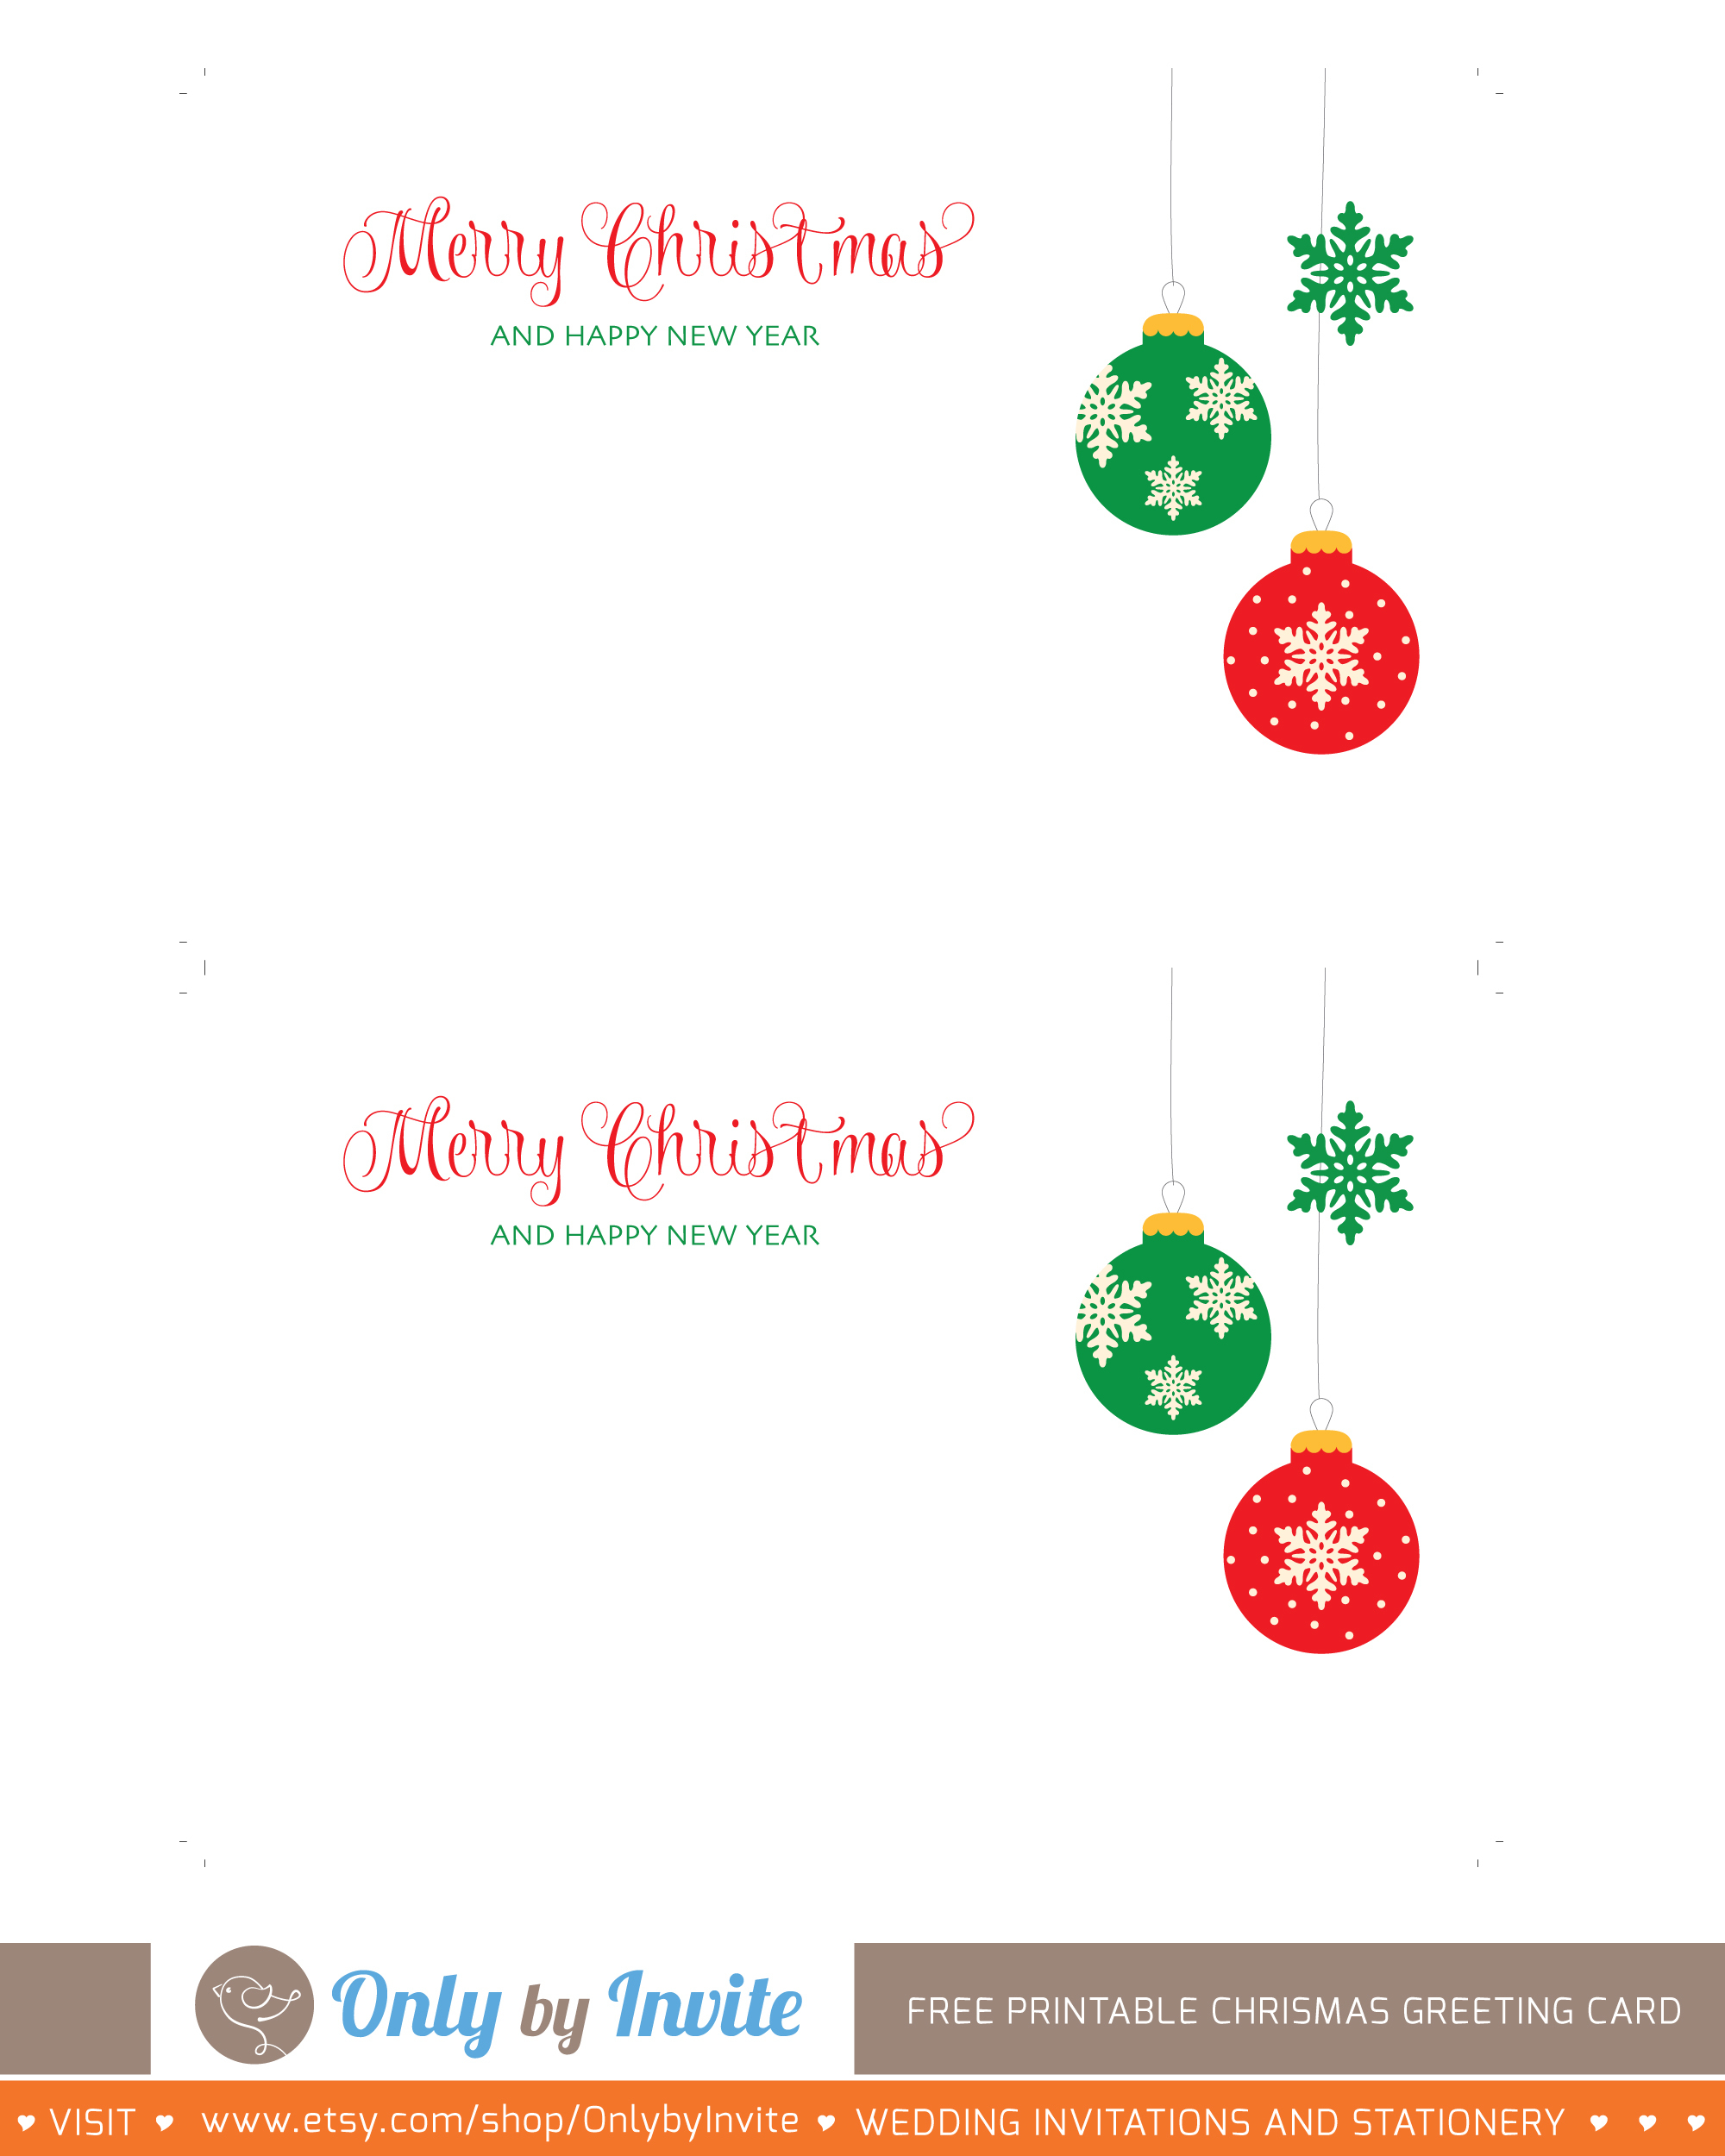 001 Printable Greetings Cards Templates Free Christmas Greeting Card - Free Printable Greeting Cards